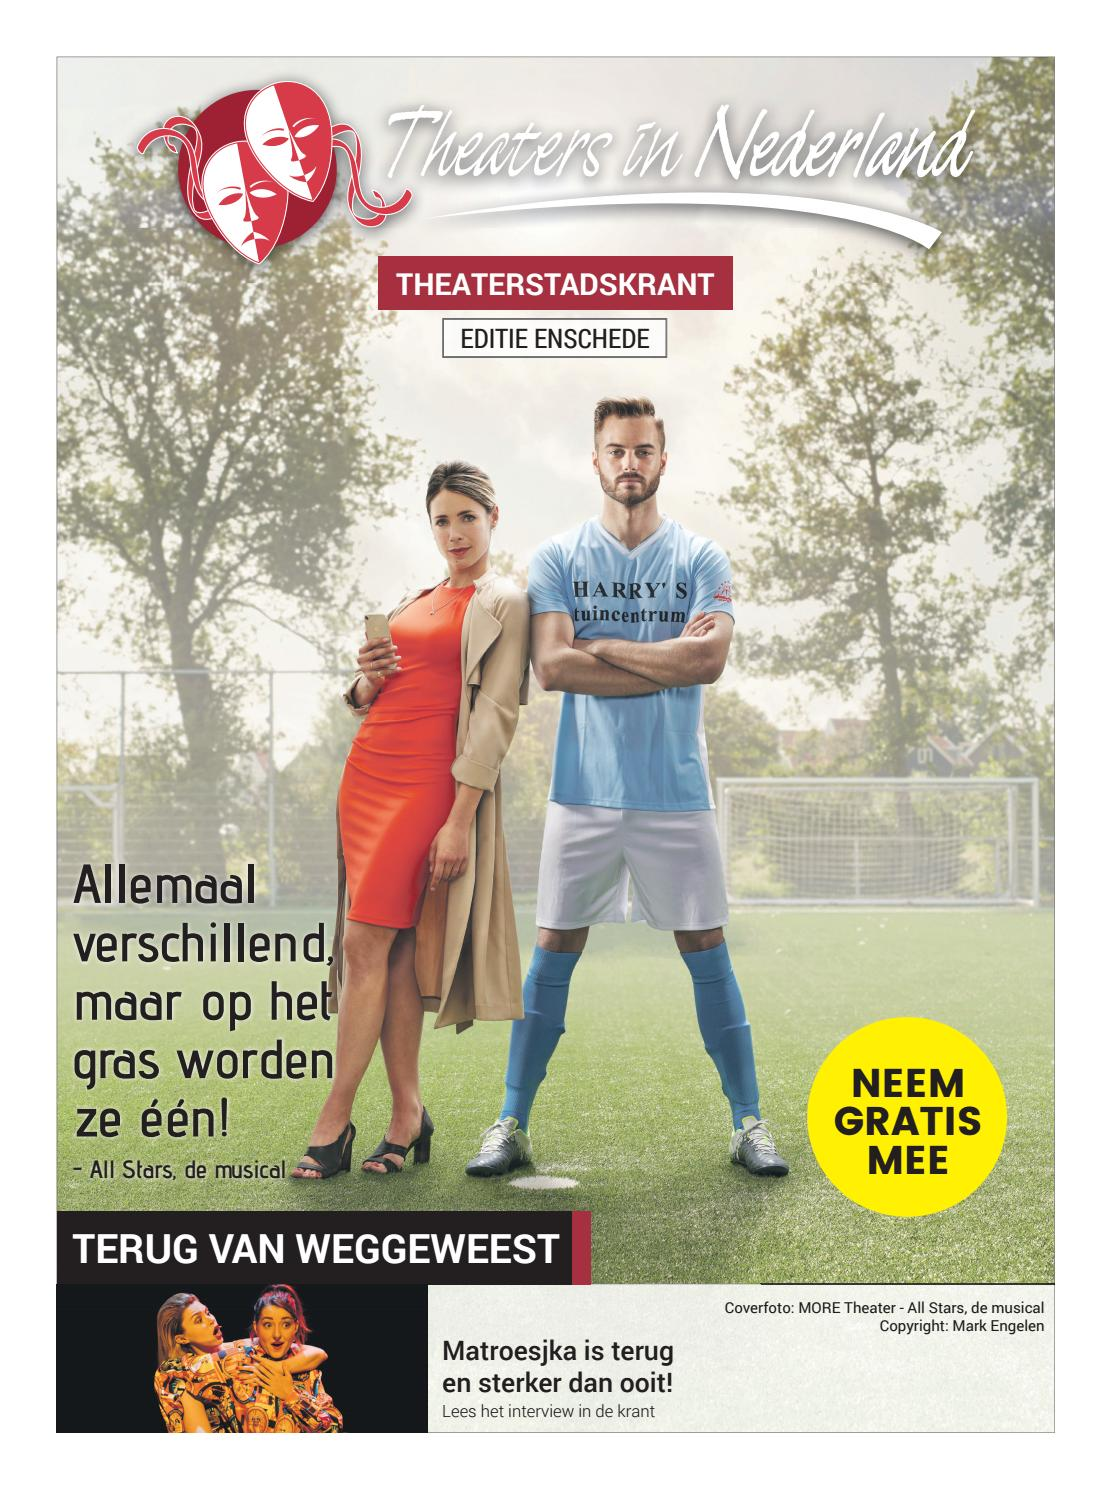 9df38e3852ad Theaterstadskrant Enschede januari 2019 by Theaters in Nederland - issuu